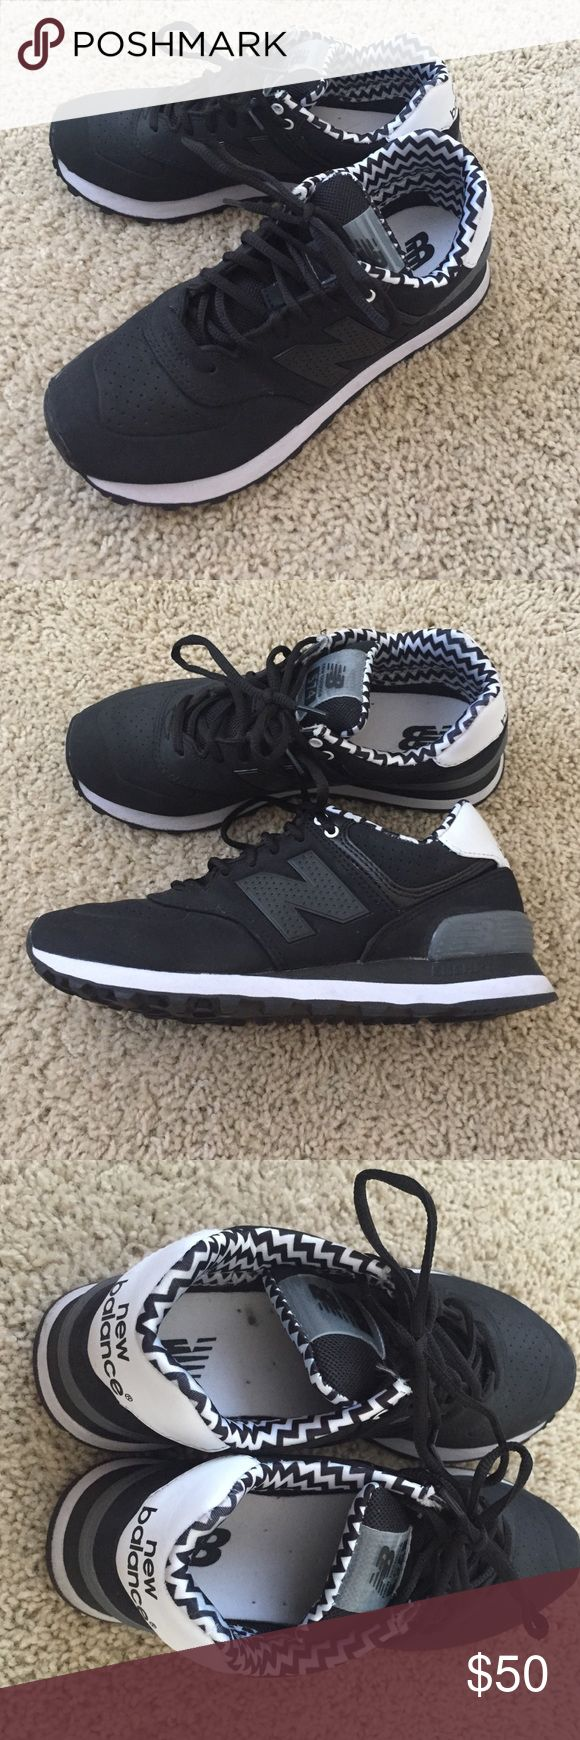 New balance gym shoes New balance gym shoes. Size 6. Never worn! NWOT. comment below for details 💞 New Balance Shoes Athletic Shoes